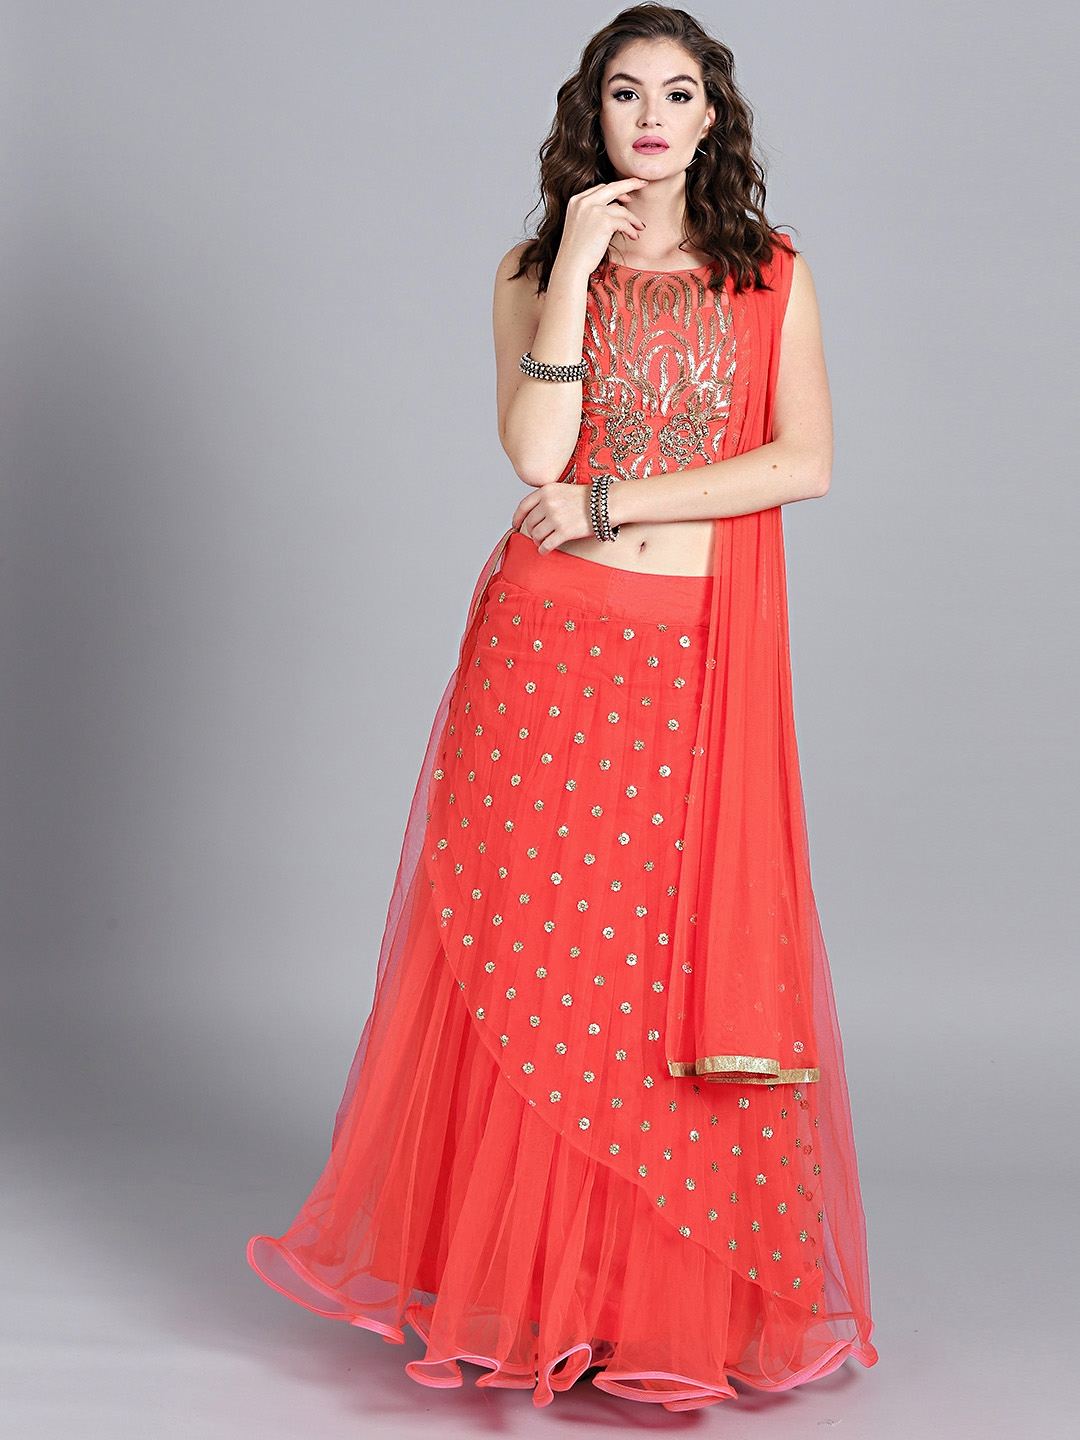 542e42d95 Chhabra 555 Coral Red   Golden Hand Embroidered Stitched Made to Measure  Lehenga Choli